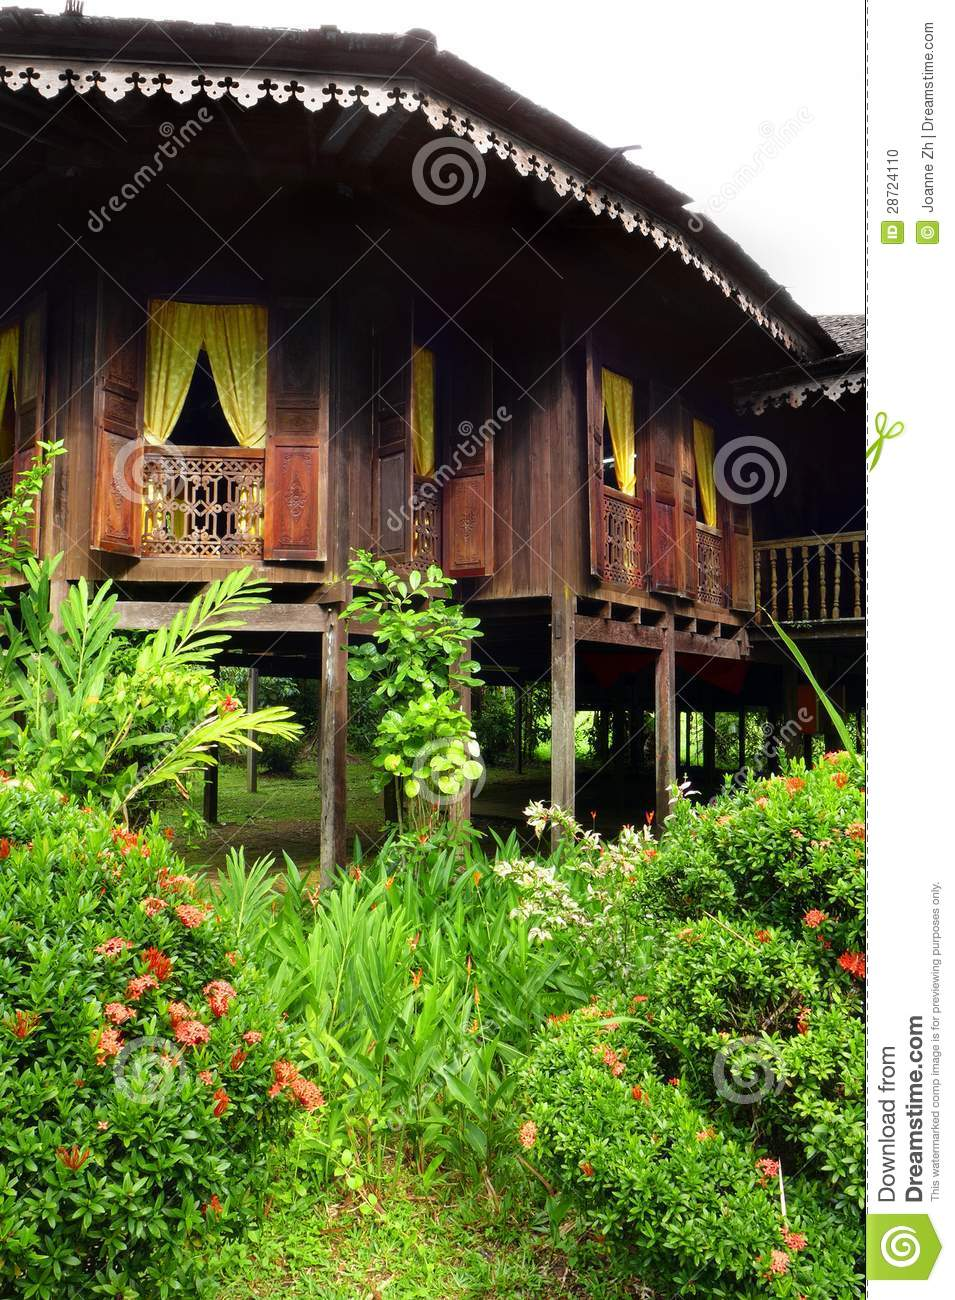 Interesting House Exterior Design In Kulai Malaysia: Exterior Of Antique Ethnic Malay House Stock Photo